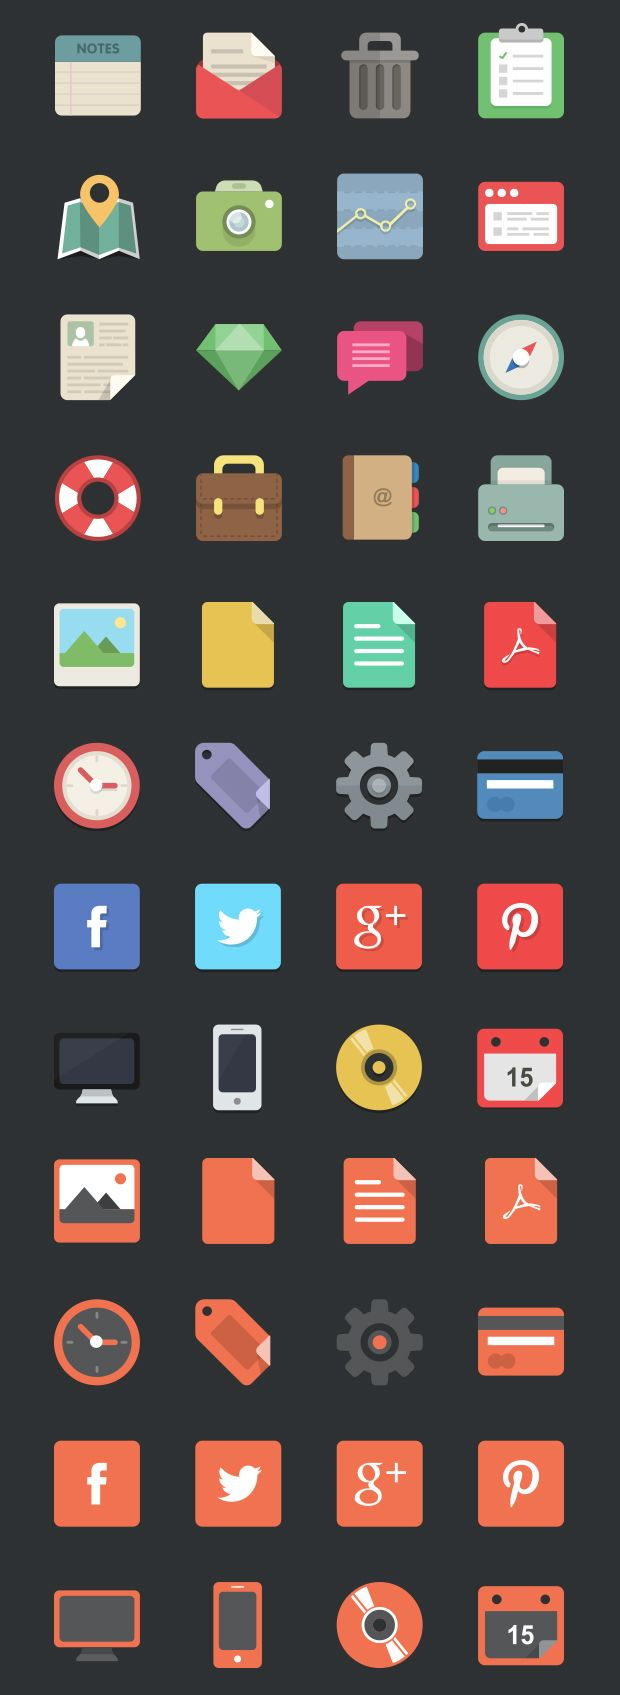 Flat icon vectors     Social media icons, technology icons, office icons     Vecteezy.com